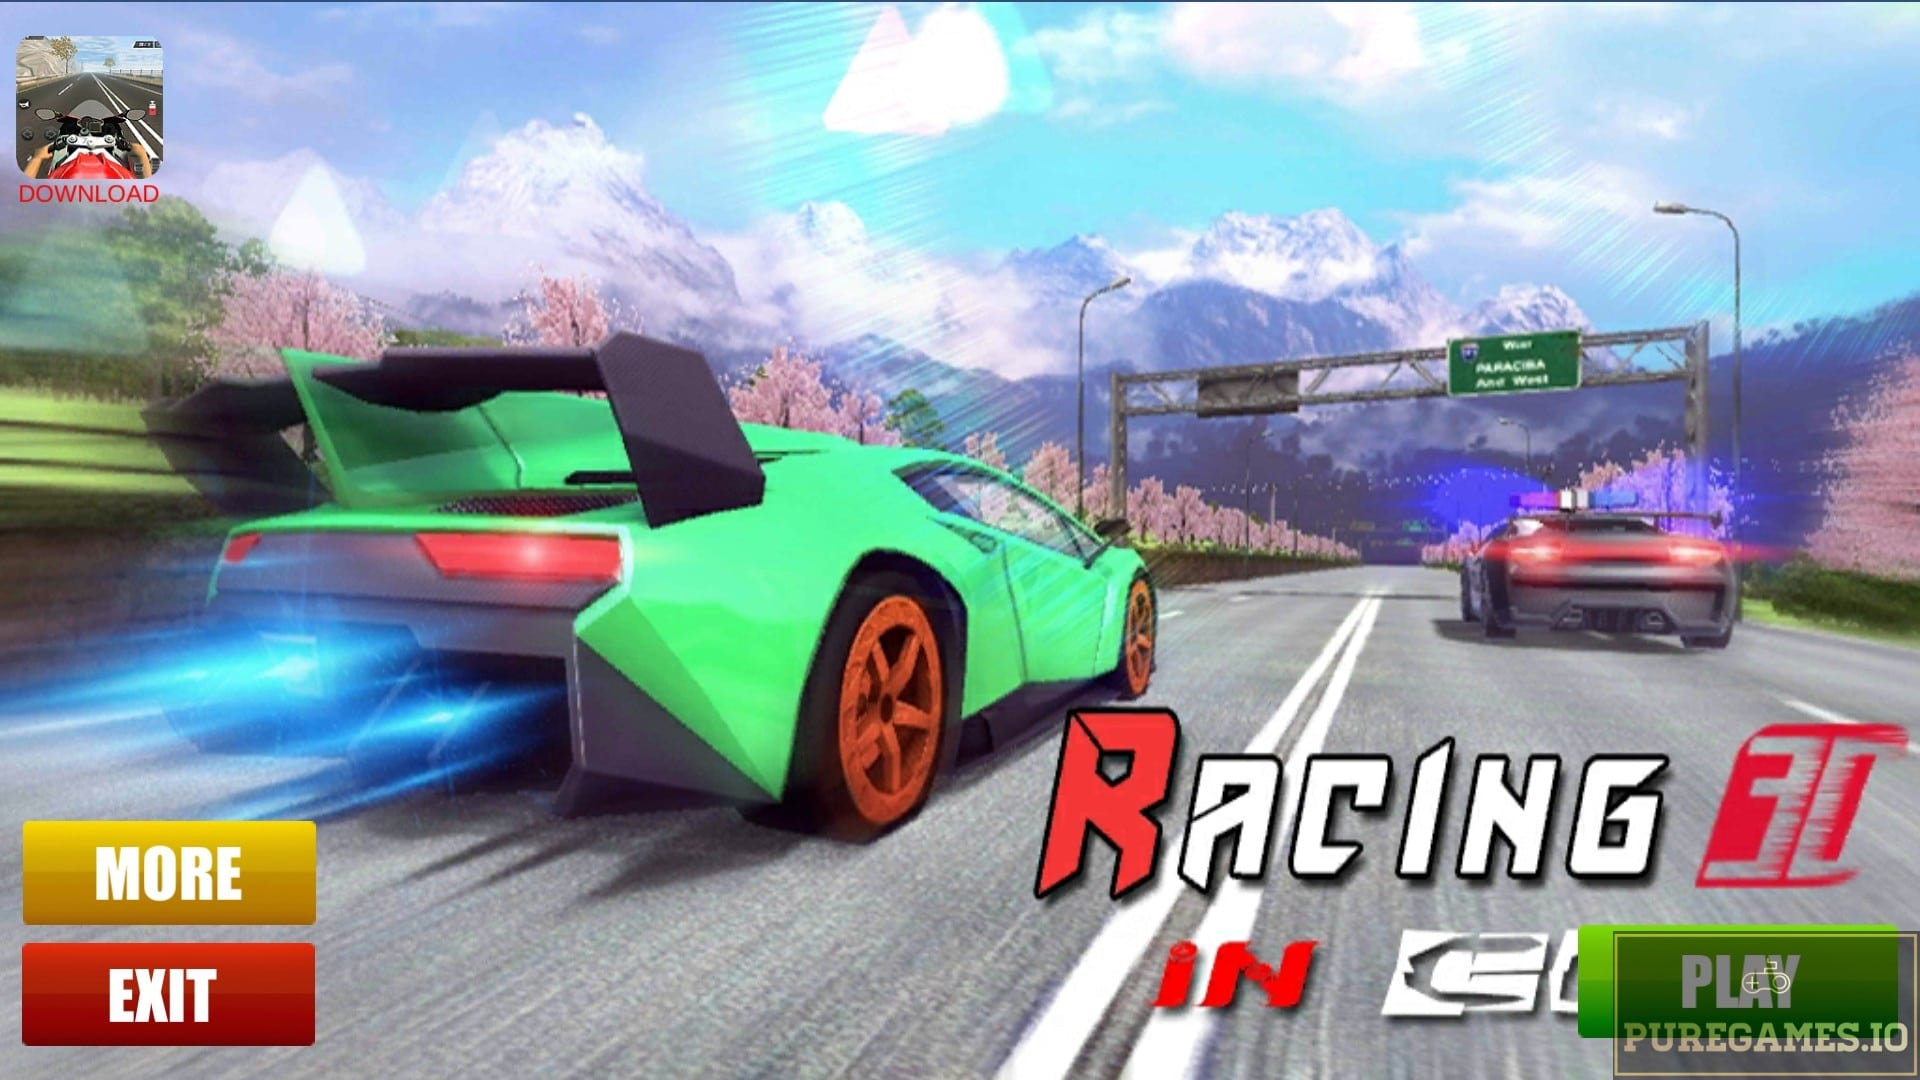 Download Racing In Car 3D APK - For Android 6